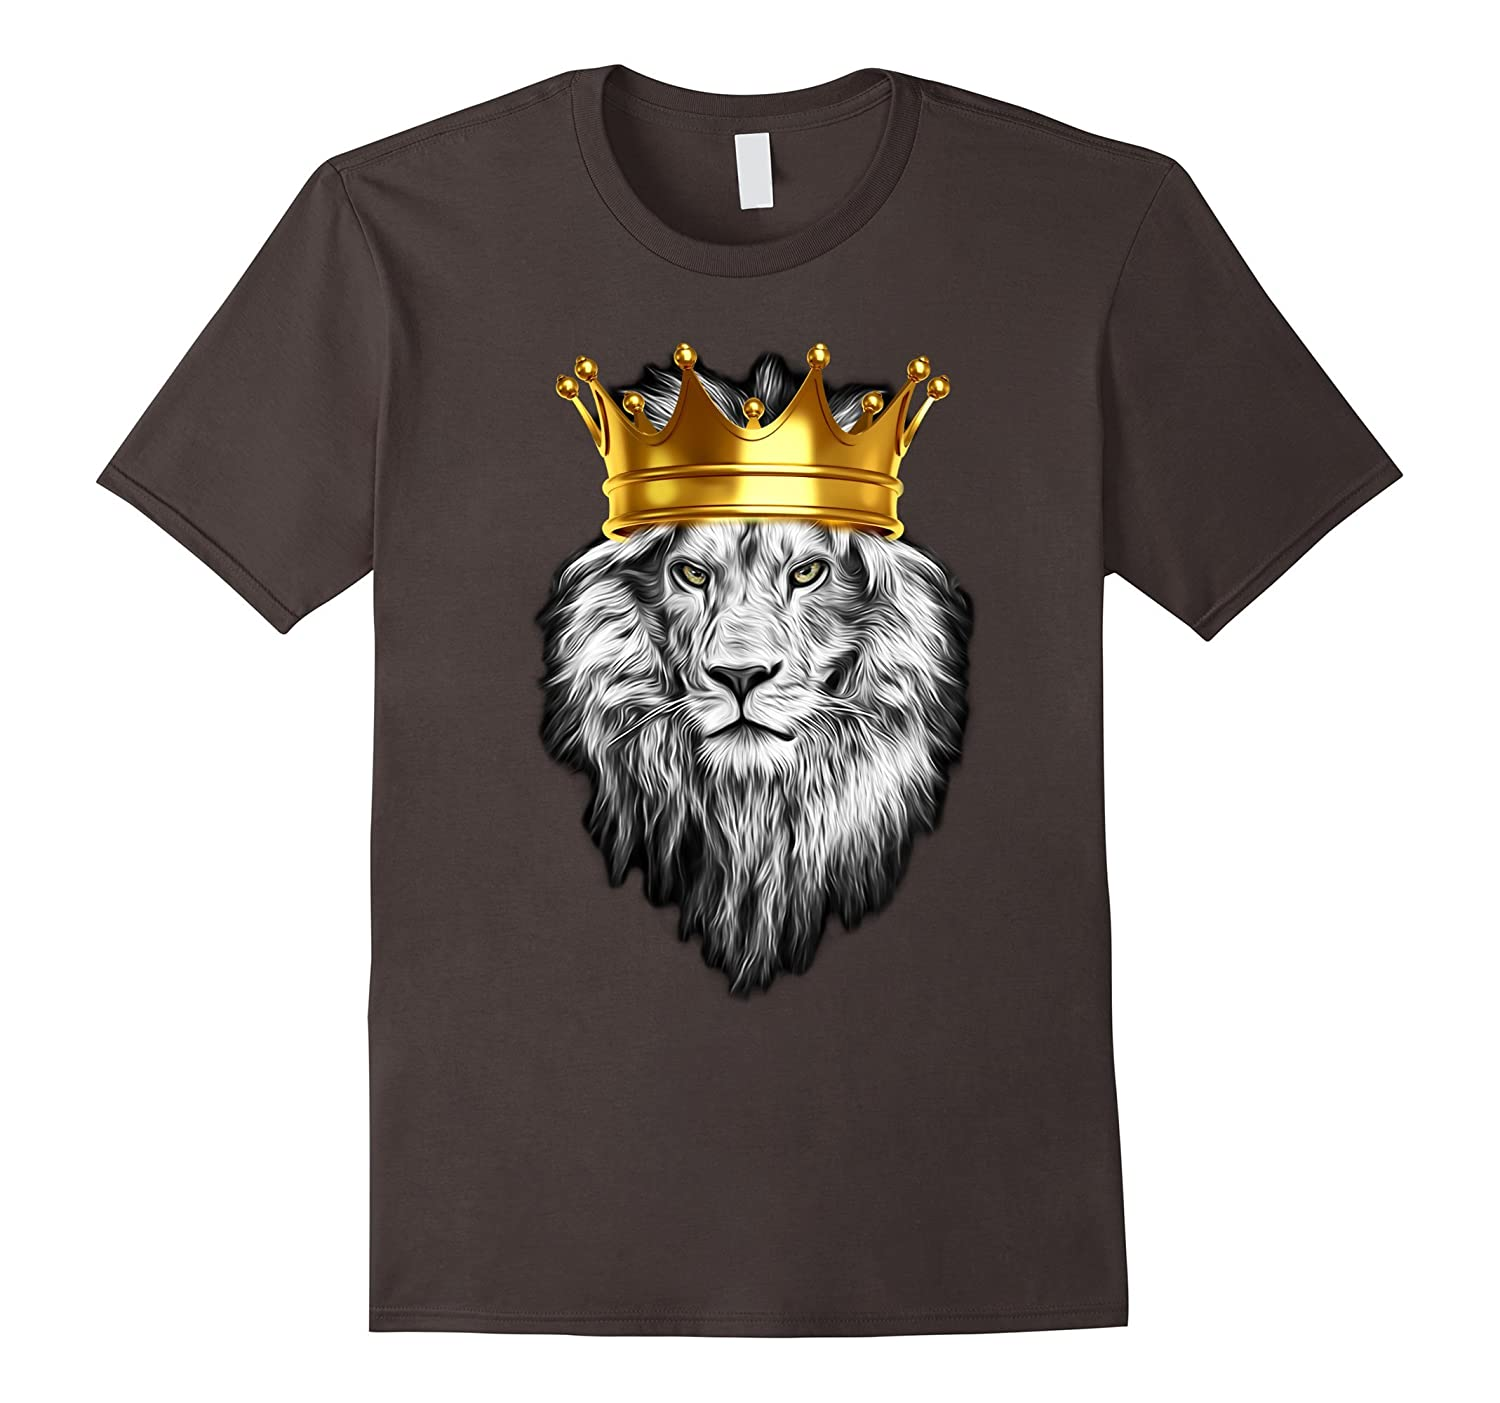 KING LION AWESOME SUPER TSHIRT BY KOPA21 DESIGNS !!-BN